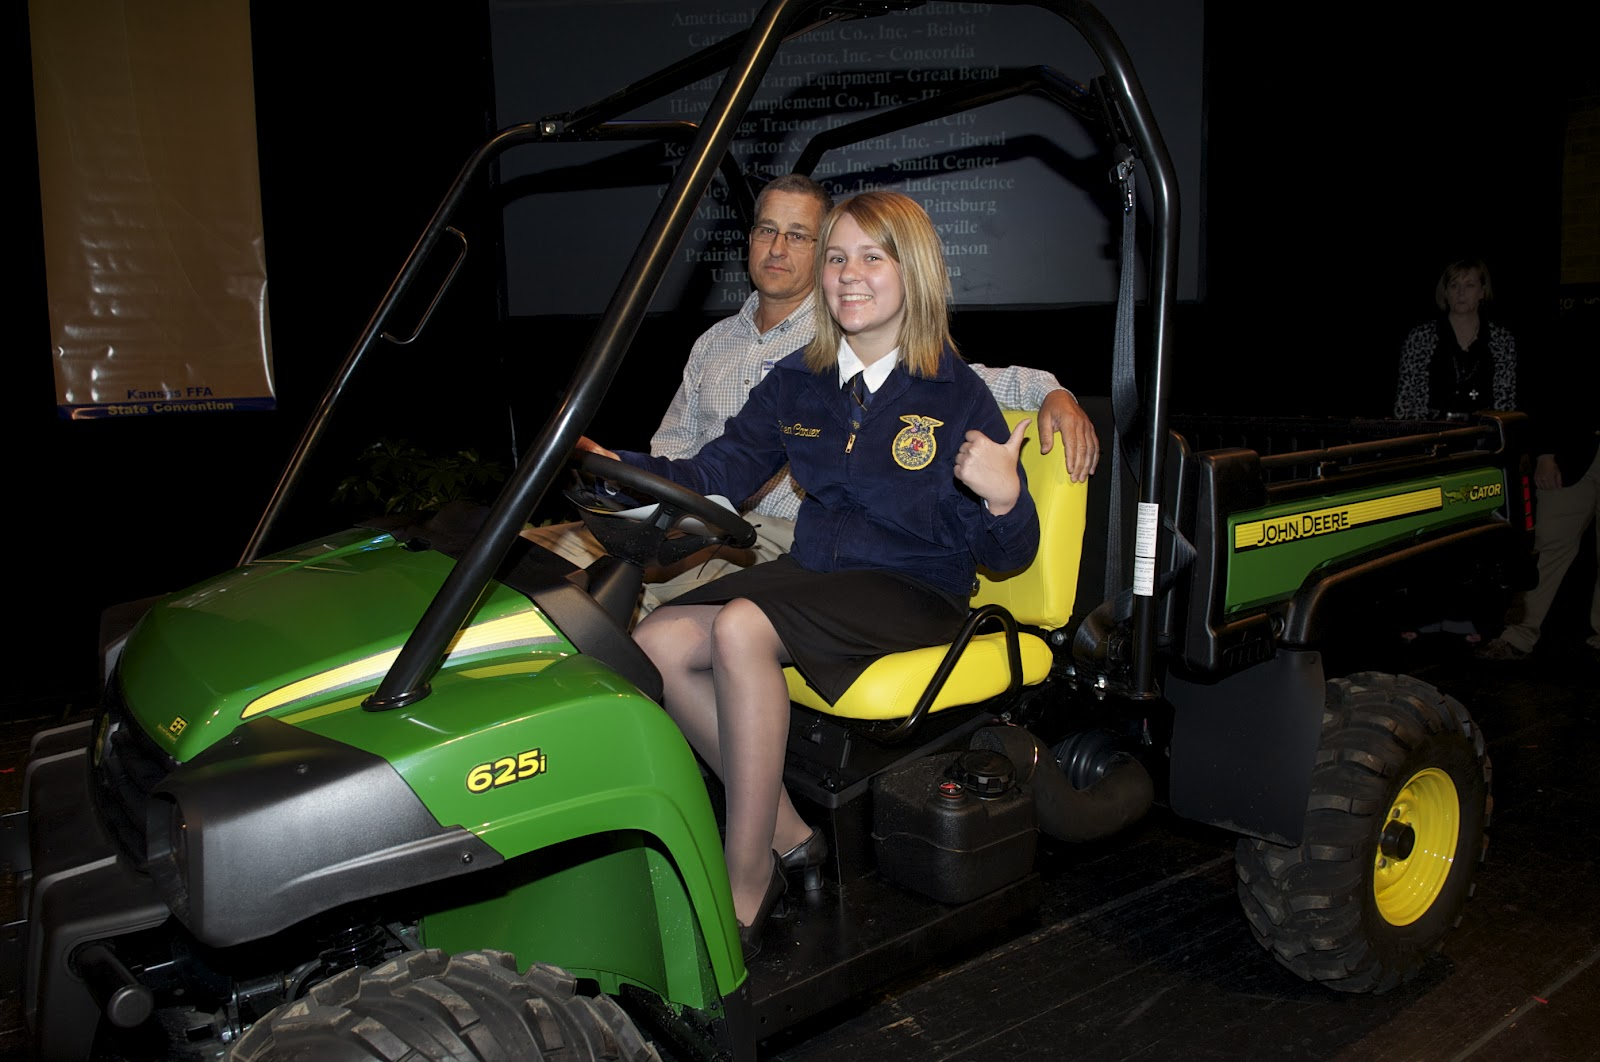 86th Kansas Ffa Convention News John Deere Gator Winner